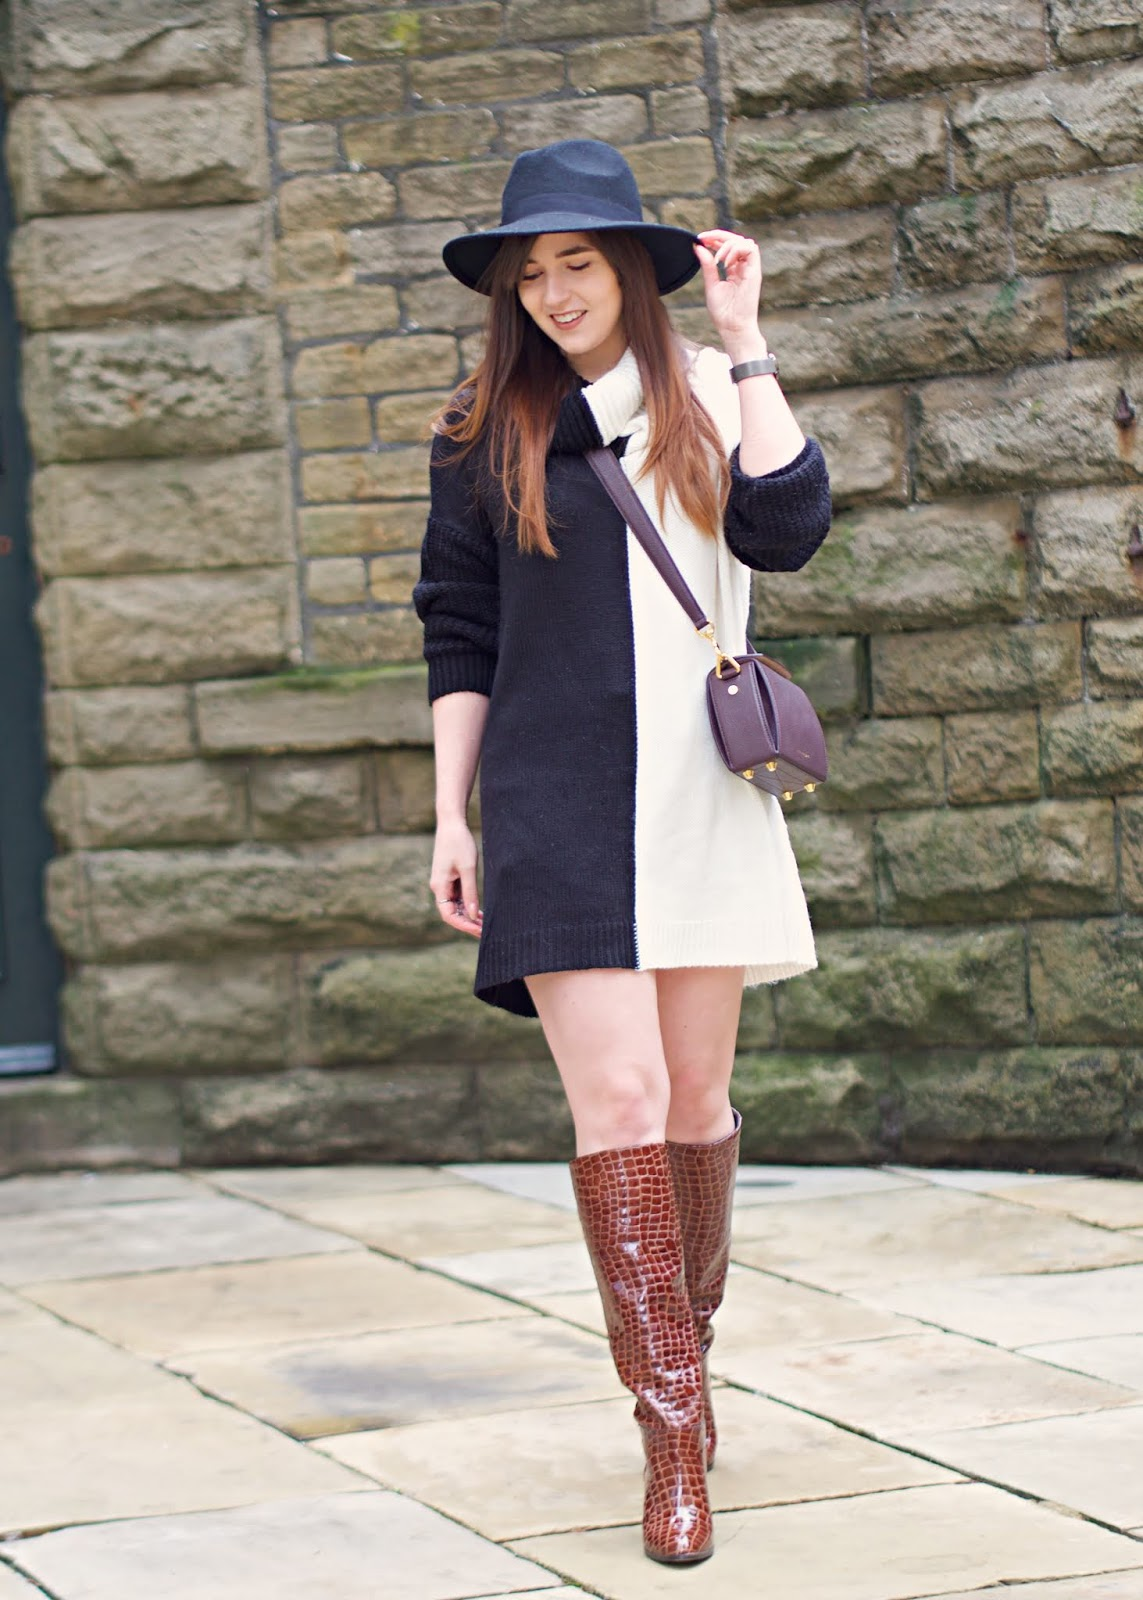 styling knee high boots